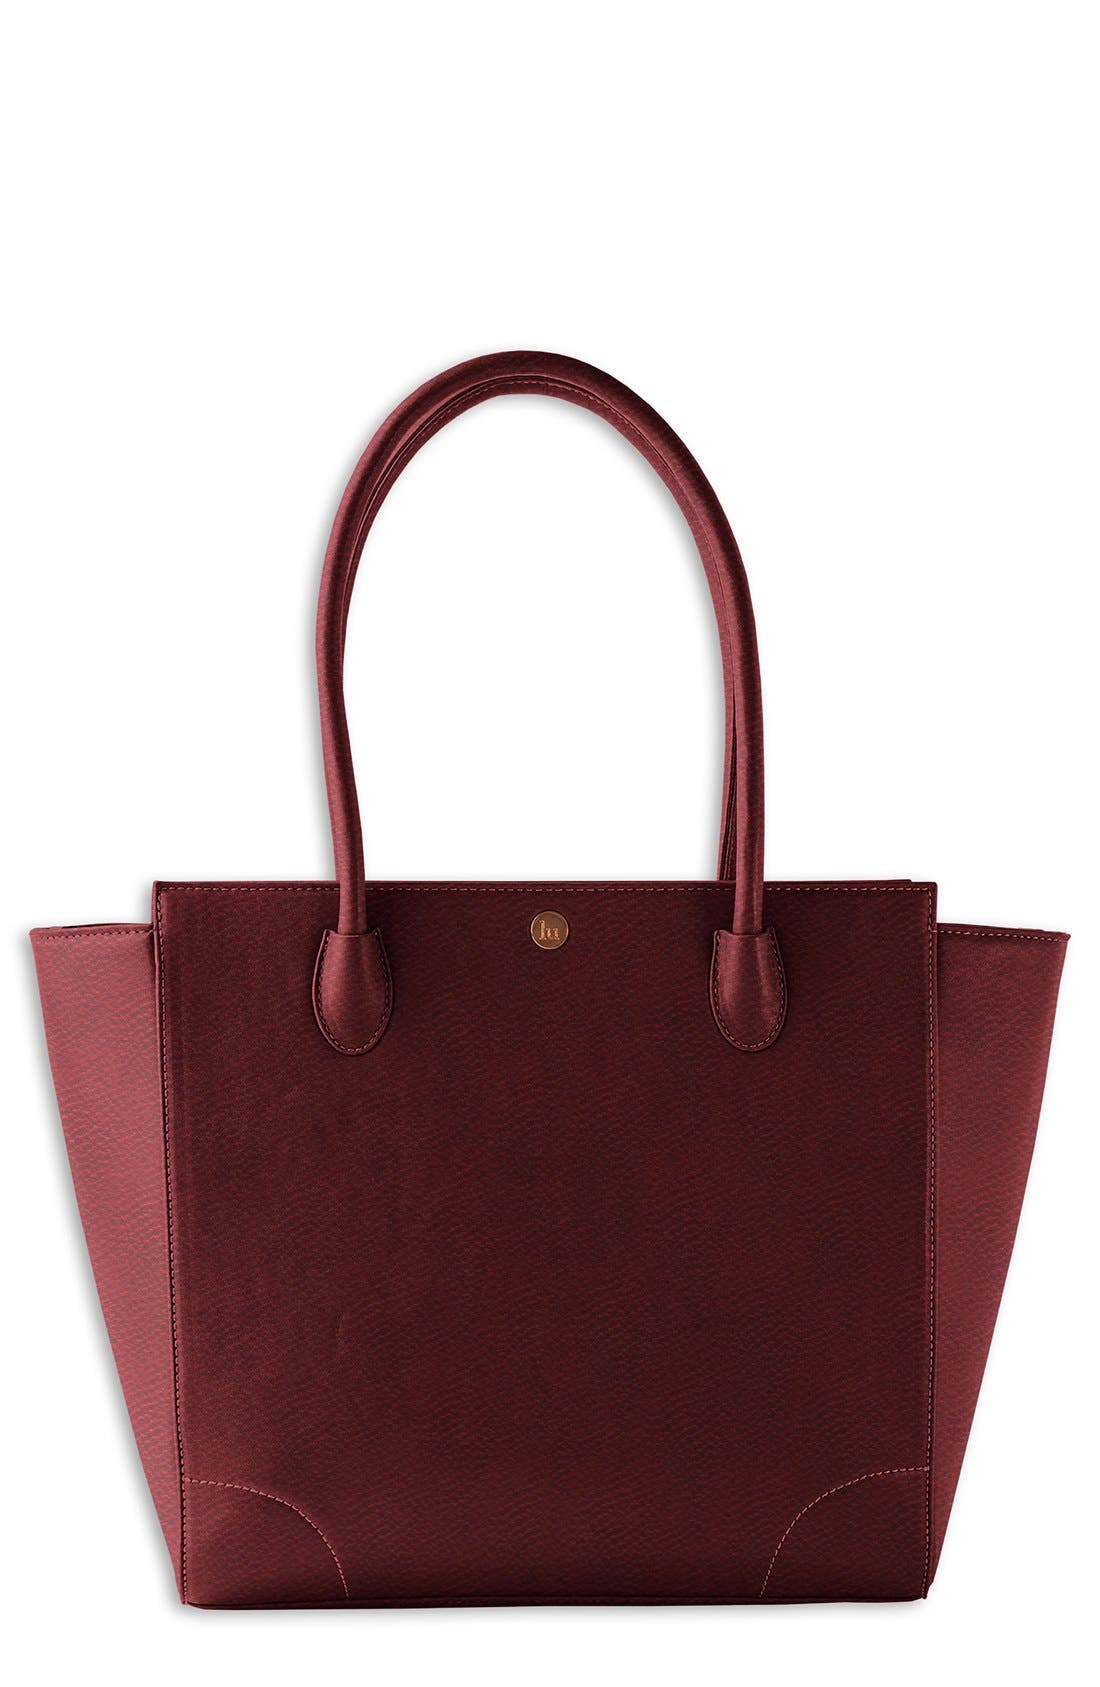 'Brookside' Diaper Tote,                         Main,                         color, Pomegranate